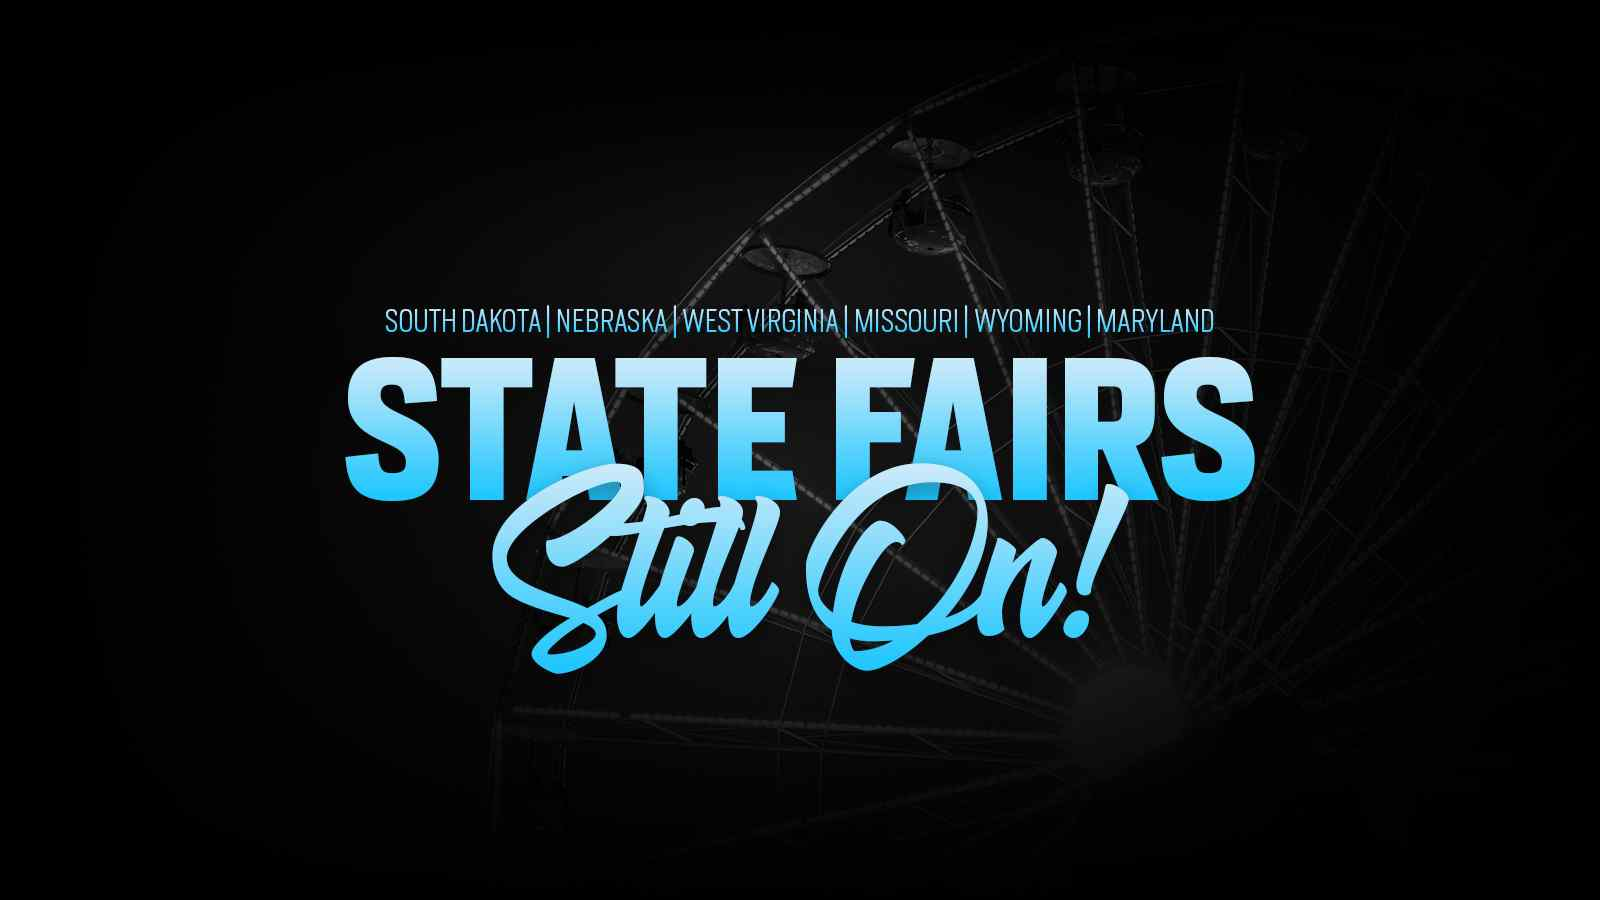 These State Fairs are Still Scheduled